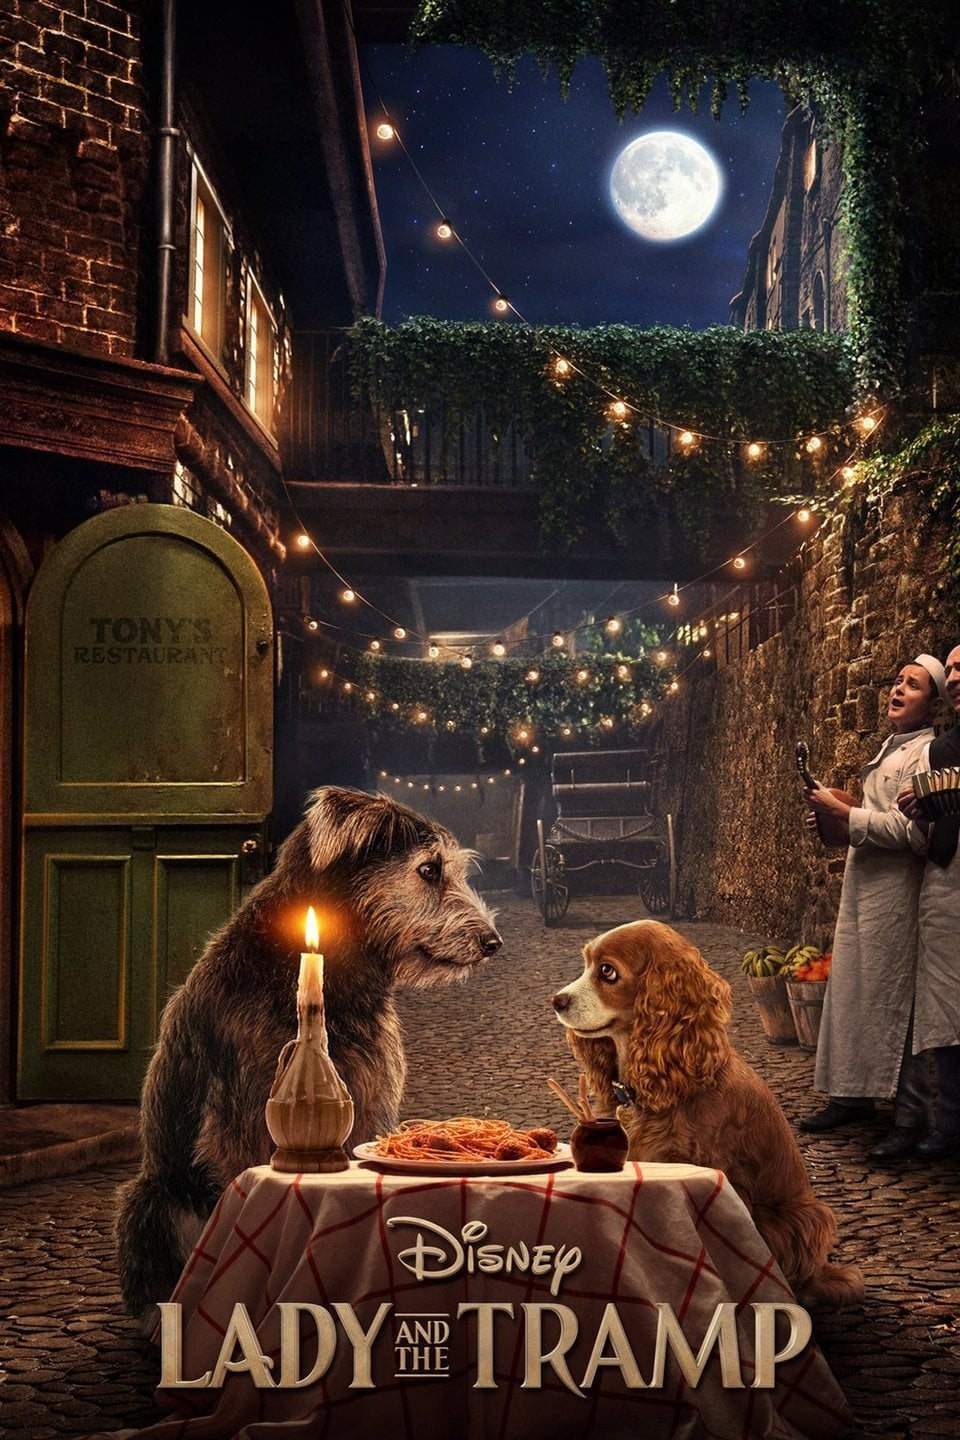 Lady and the Tramp